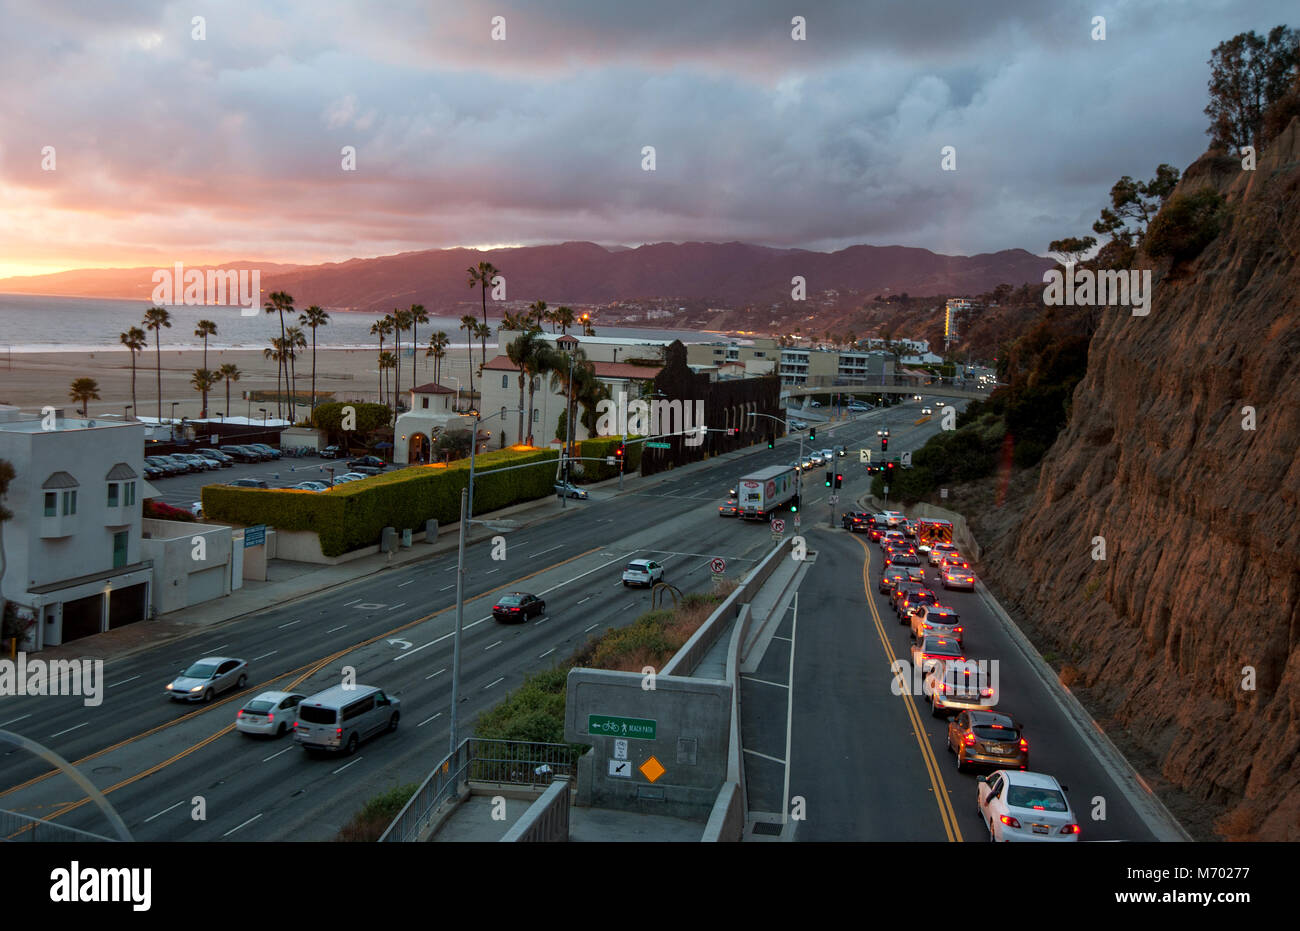 Cars on the California Incline heading down onto the Pacific Coast Highway in Santa Monica at Sunset. - Stock Image